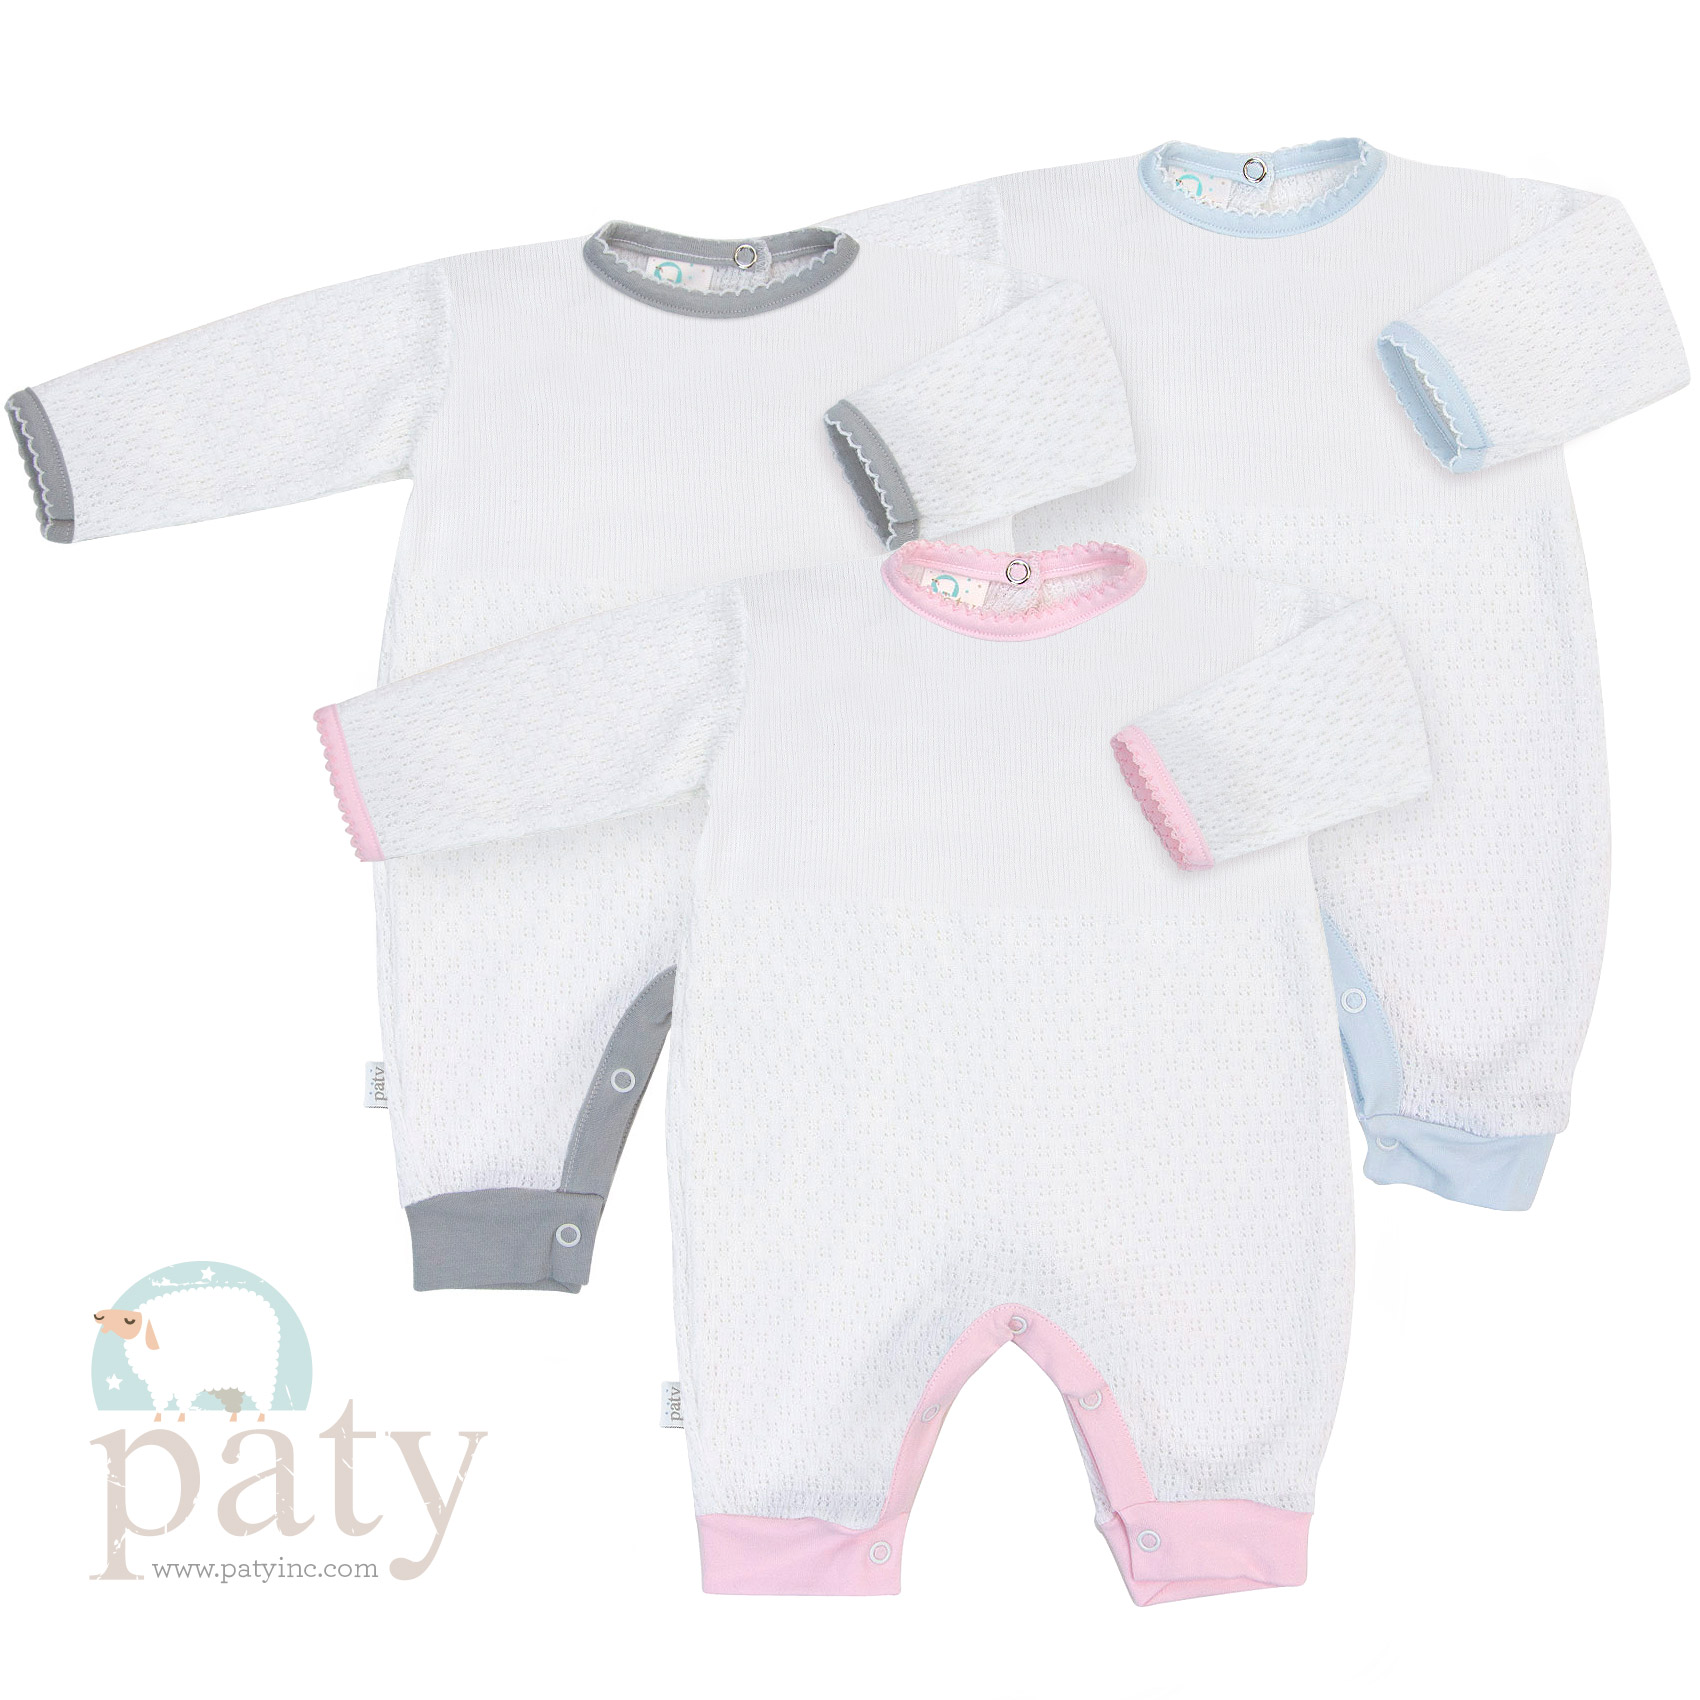 Paty Knit Romper with Cotton Trim Options